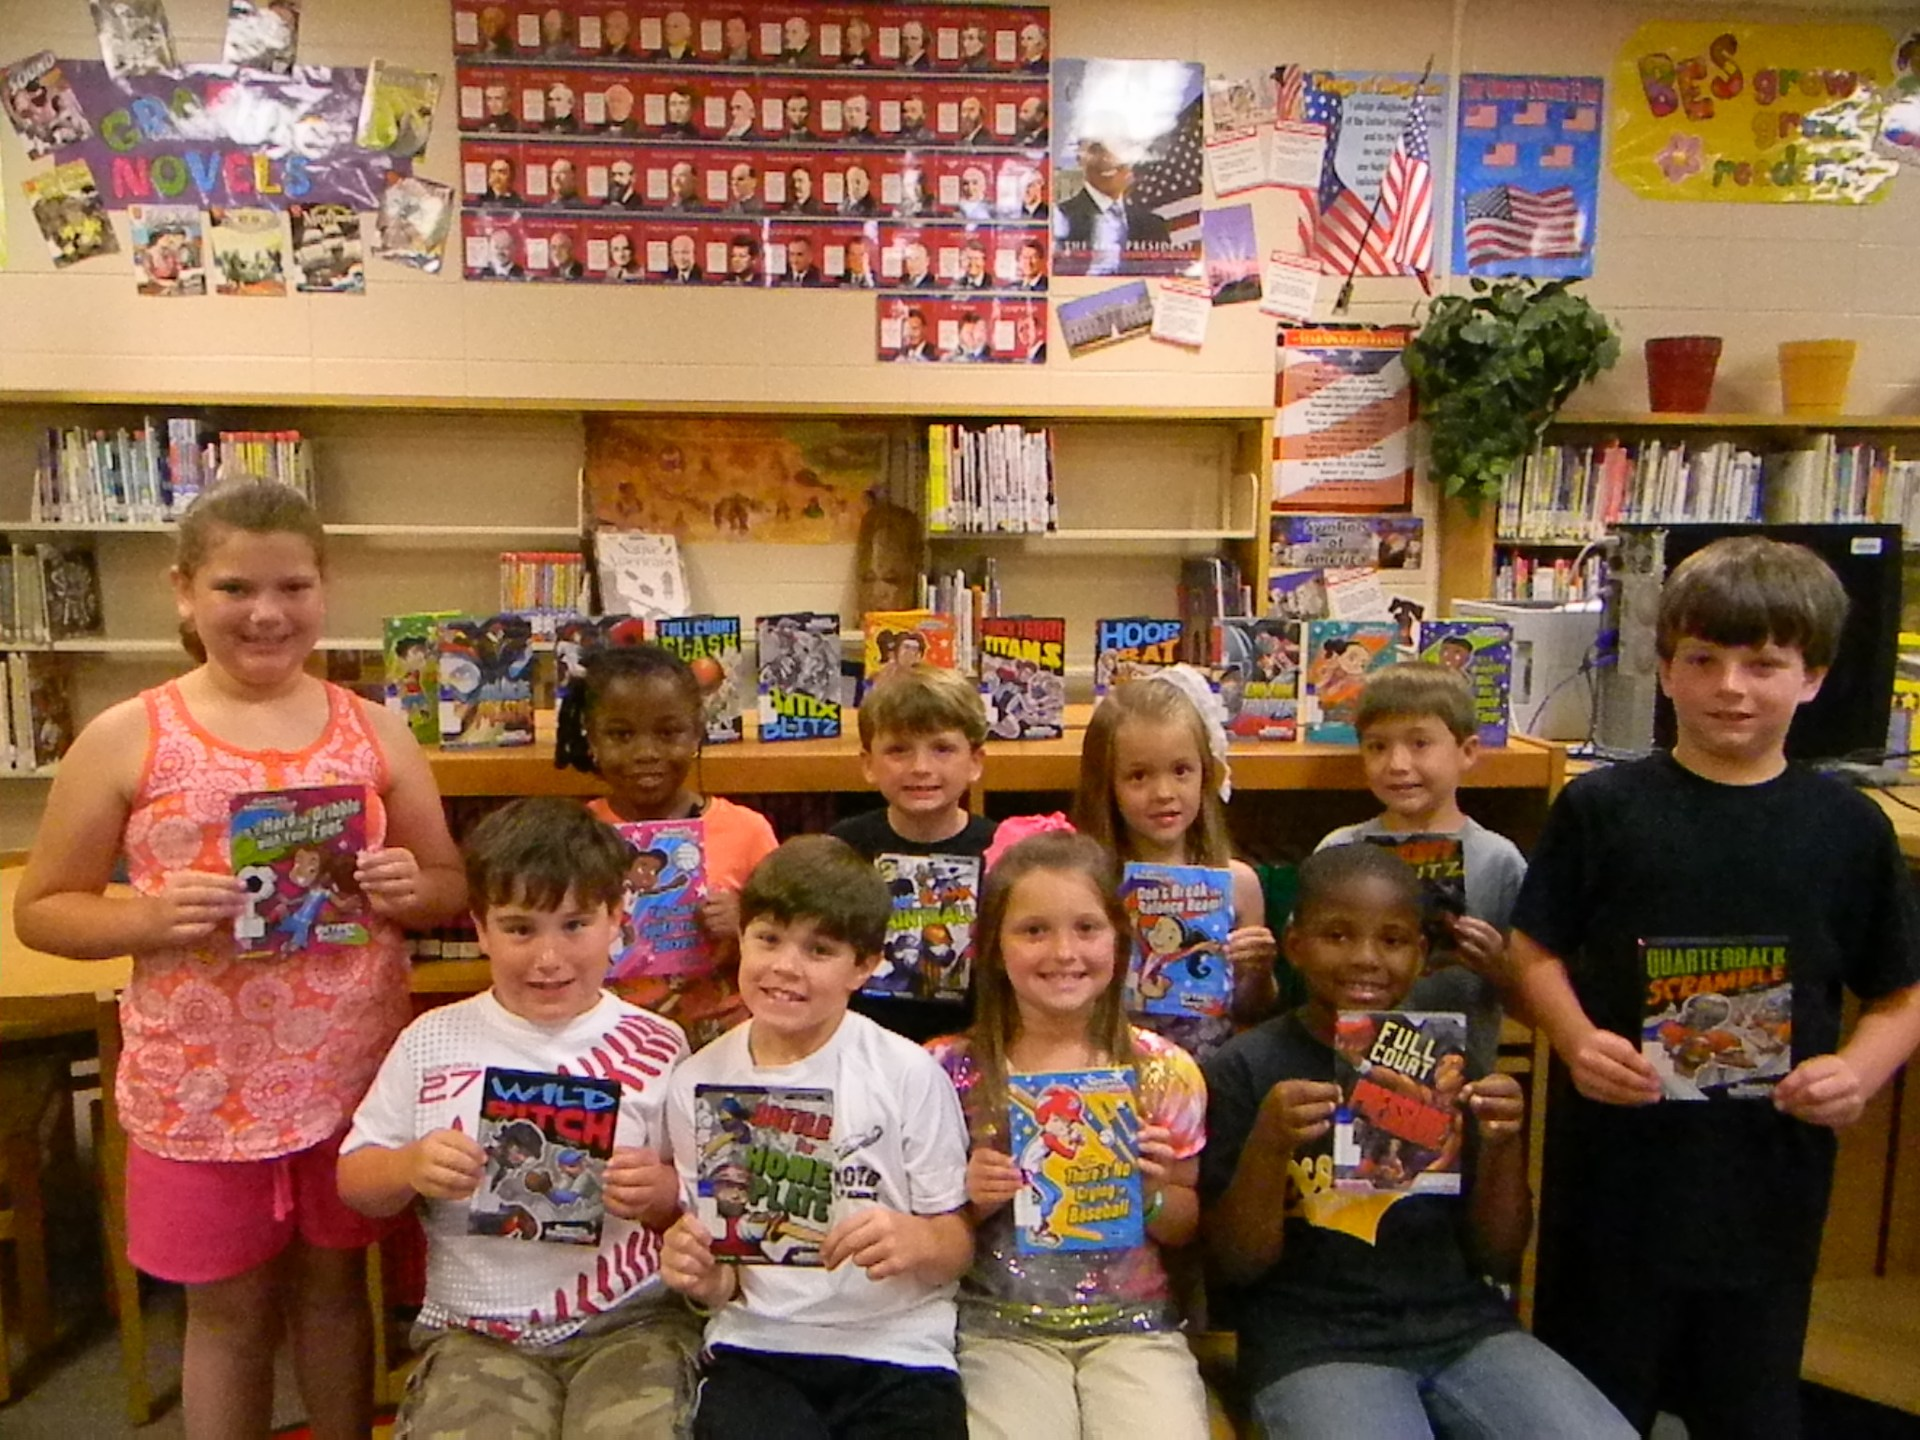 BES students excited about new sports books in the library.